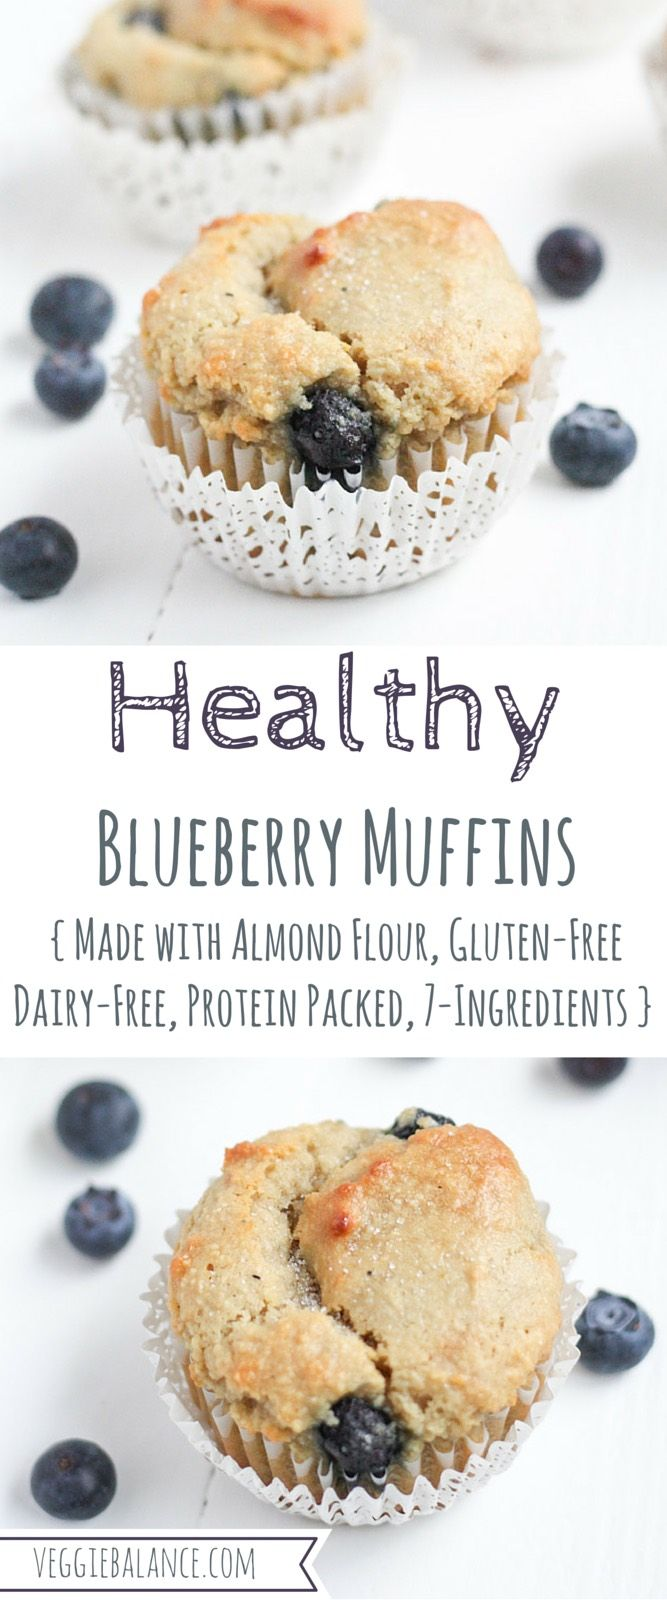 Gluten Free Blueberry Muffins. Just 7-Ingredients, refined sugar-free, dairy-free, and low-sugar.